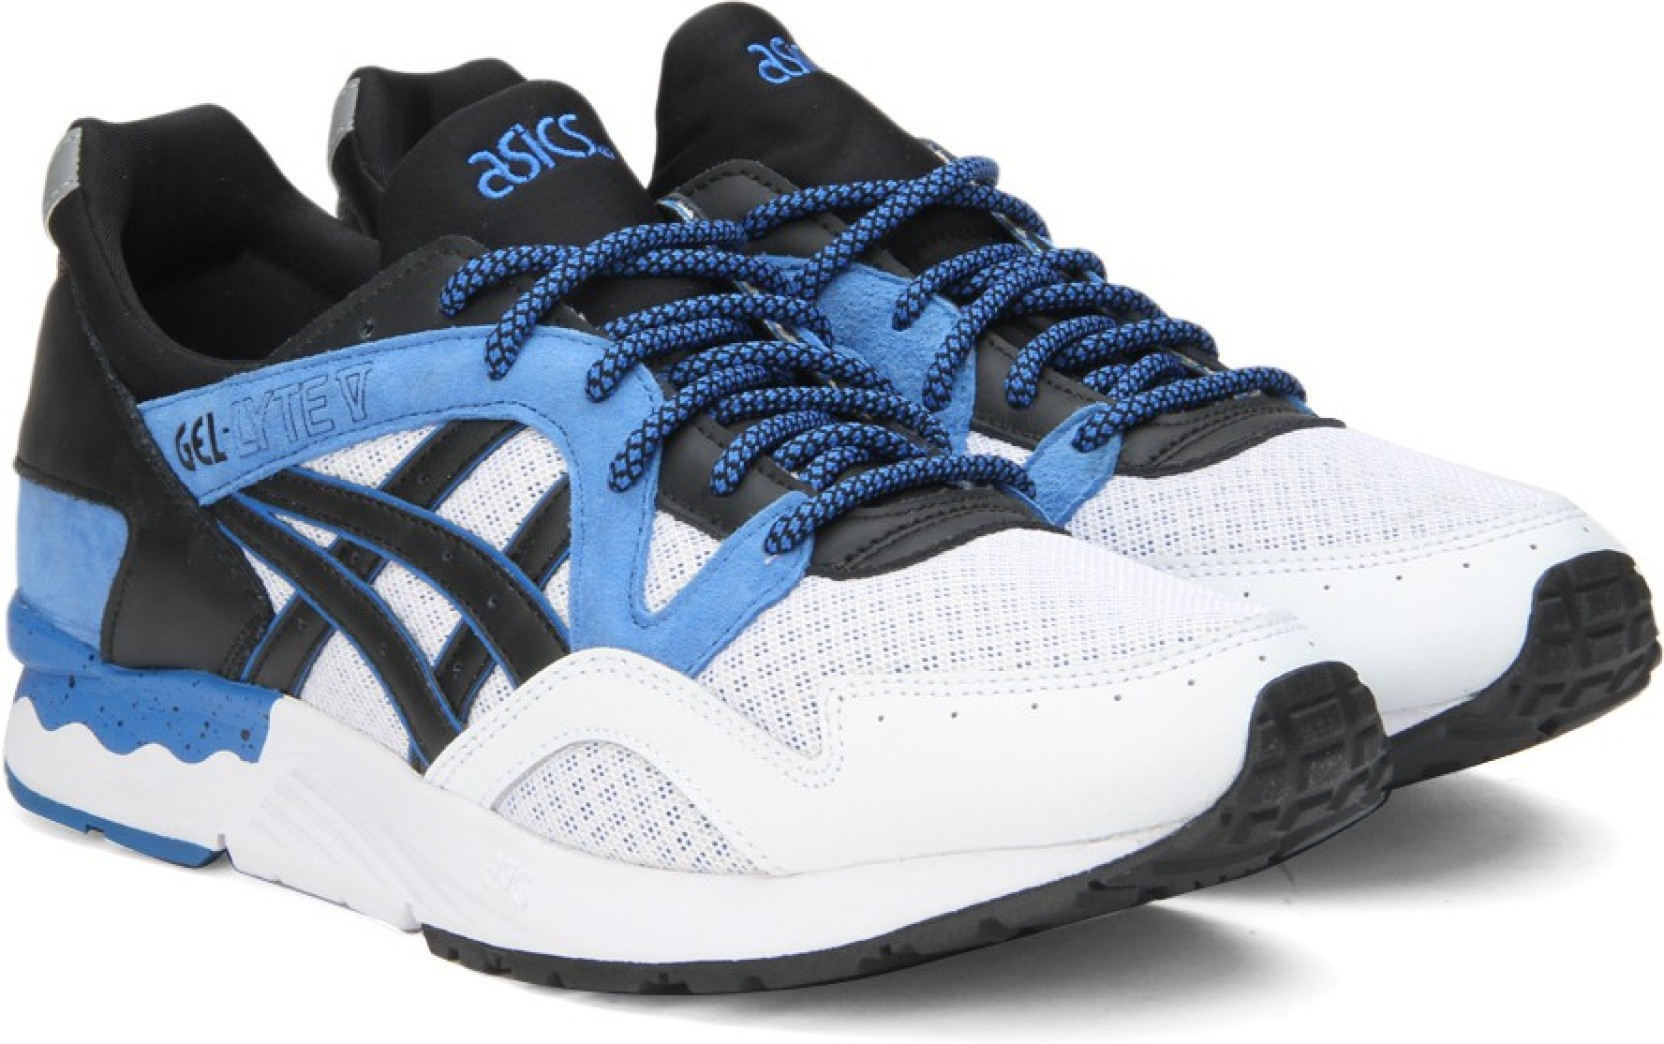 891f05bb958a Asics TIGER GEL-LYTE V Sneakers For Men - Buy CLASSIC BLUE BLACK ...